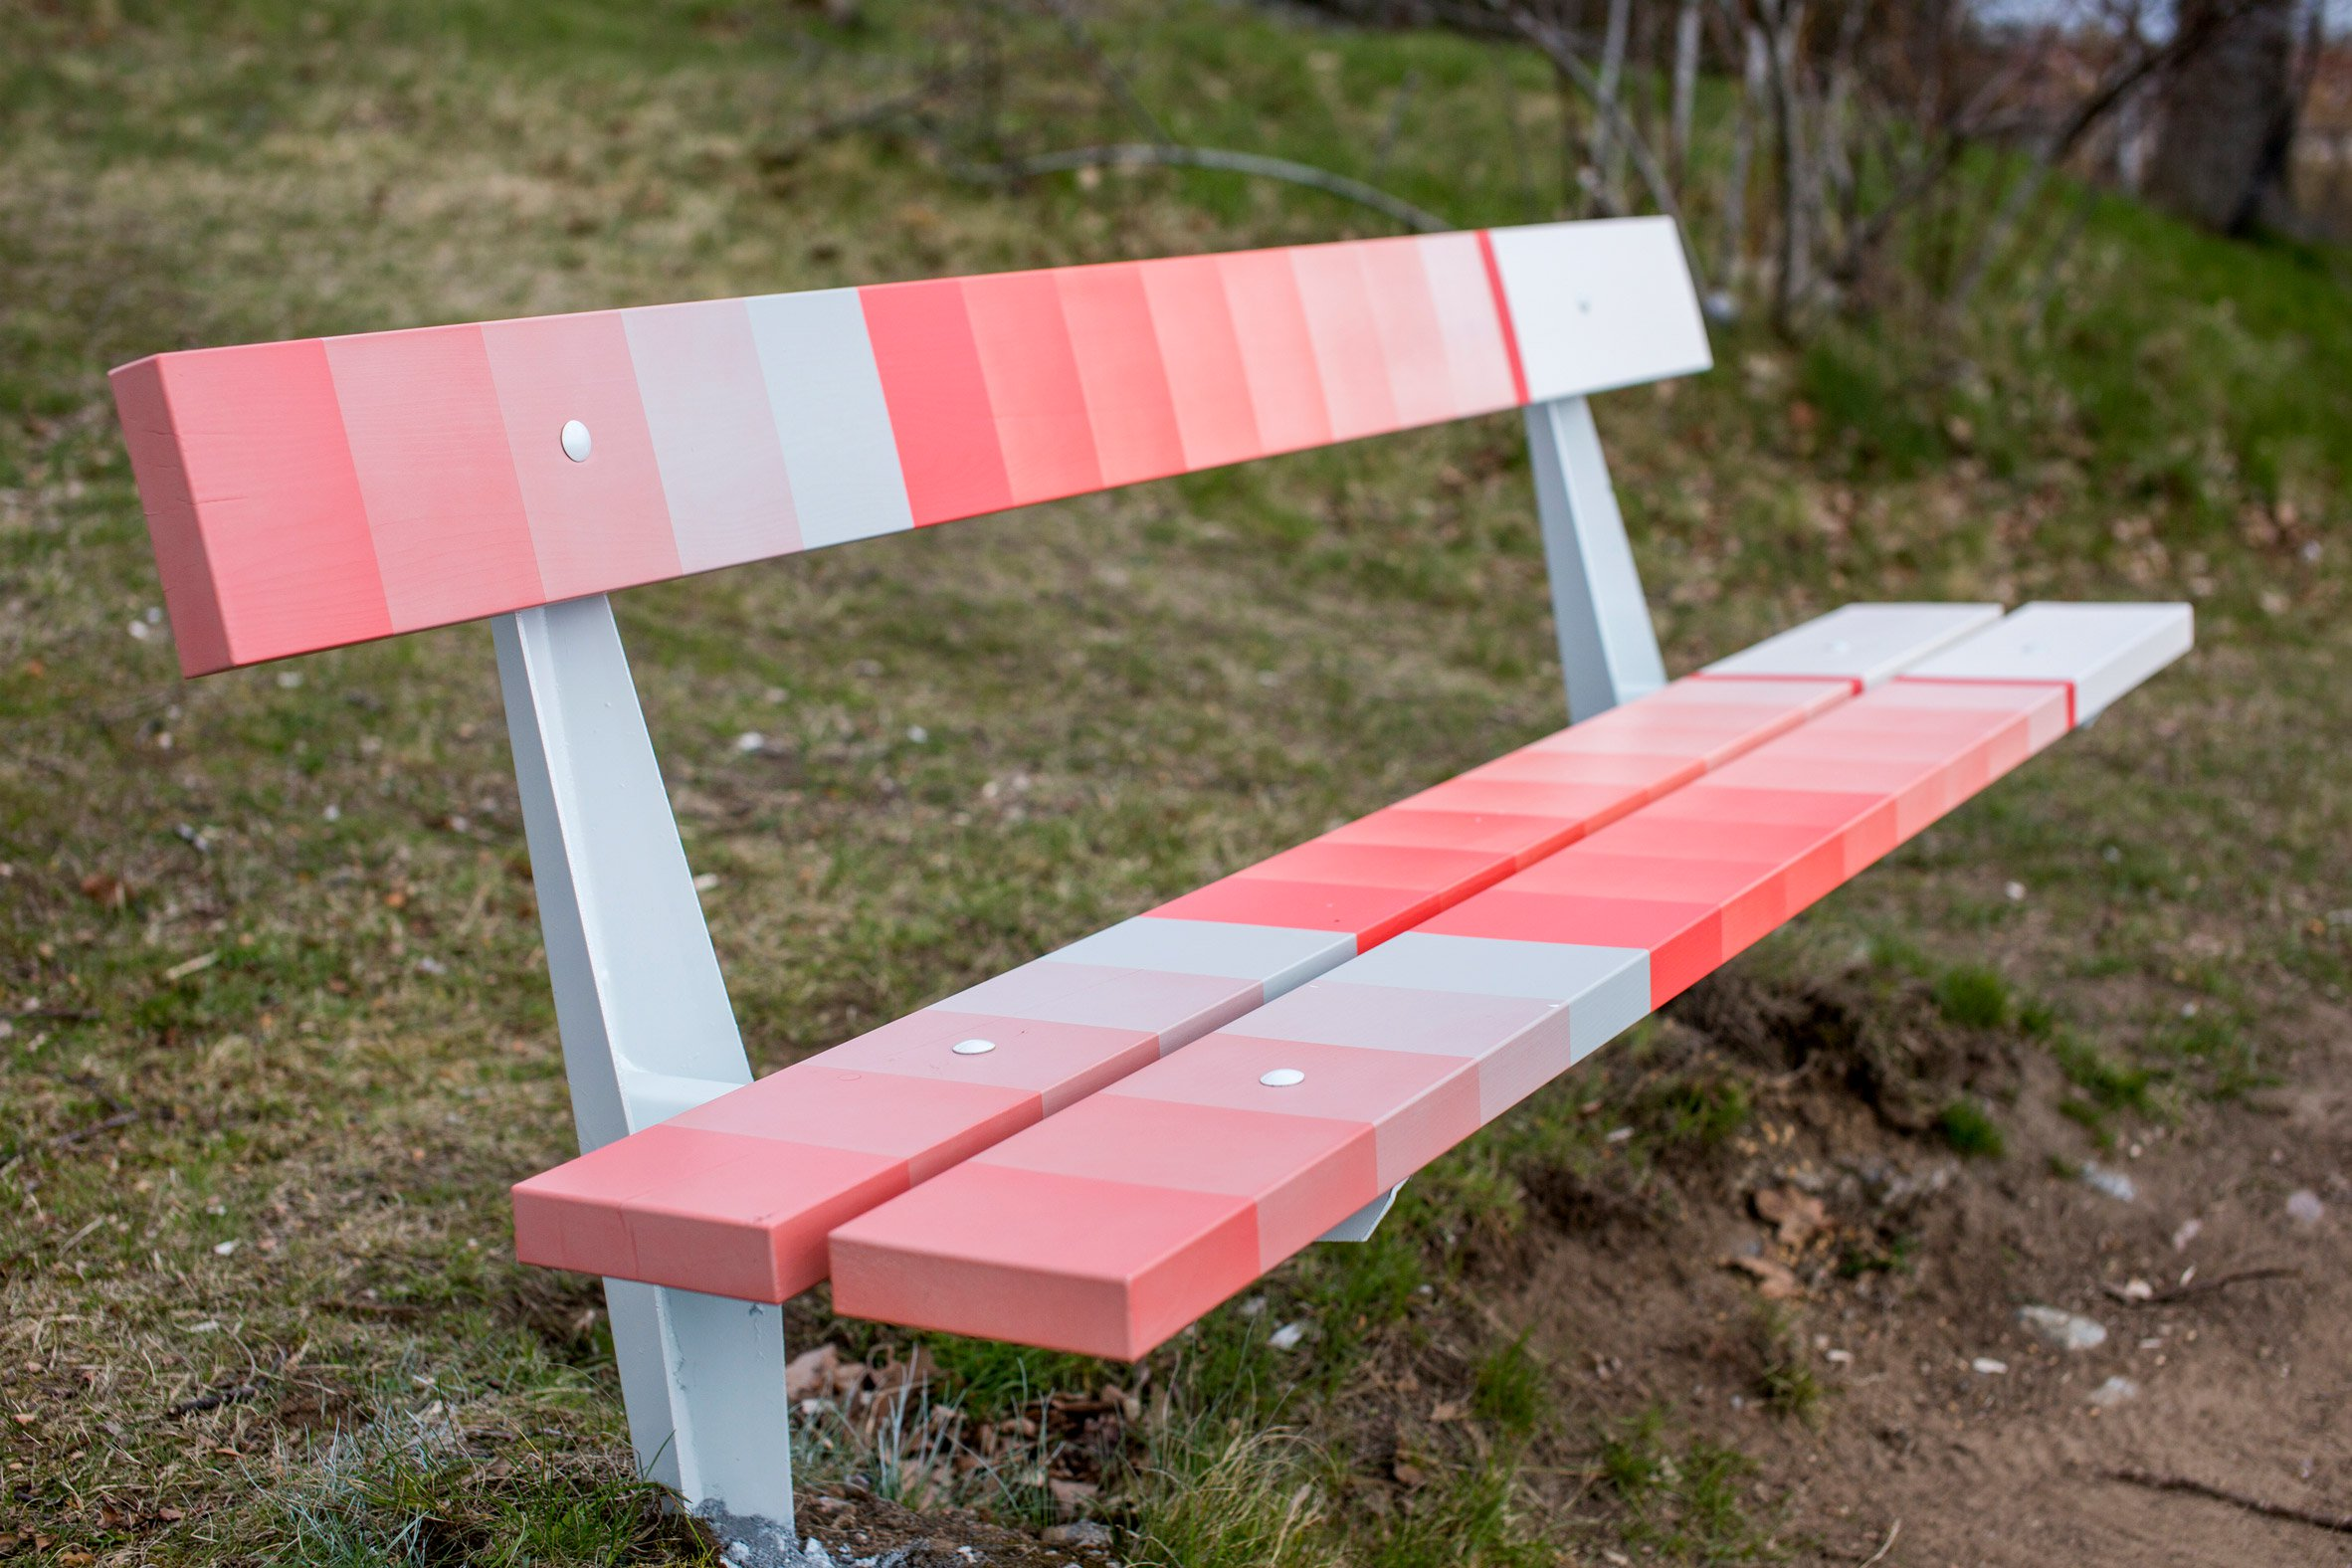 superbenches-design-furniture-benches-colour-benches-scholten-baijings_dezeen_2364_col_6.jpg